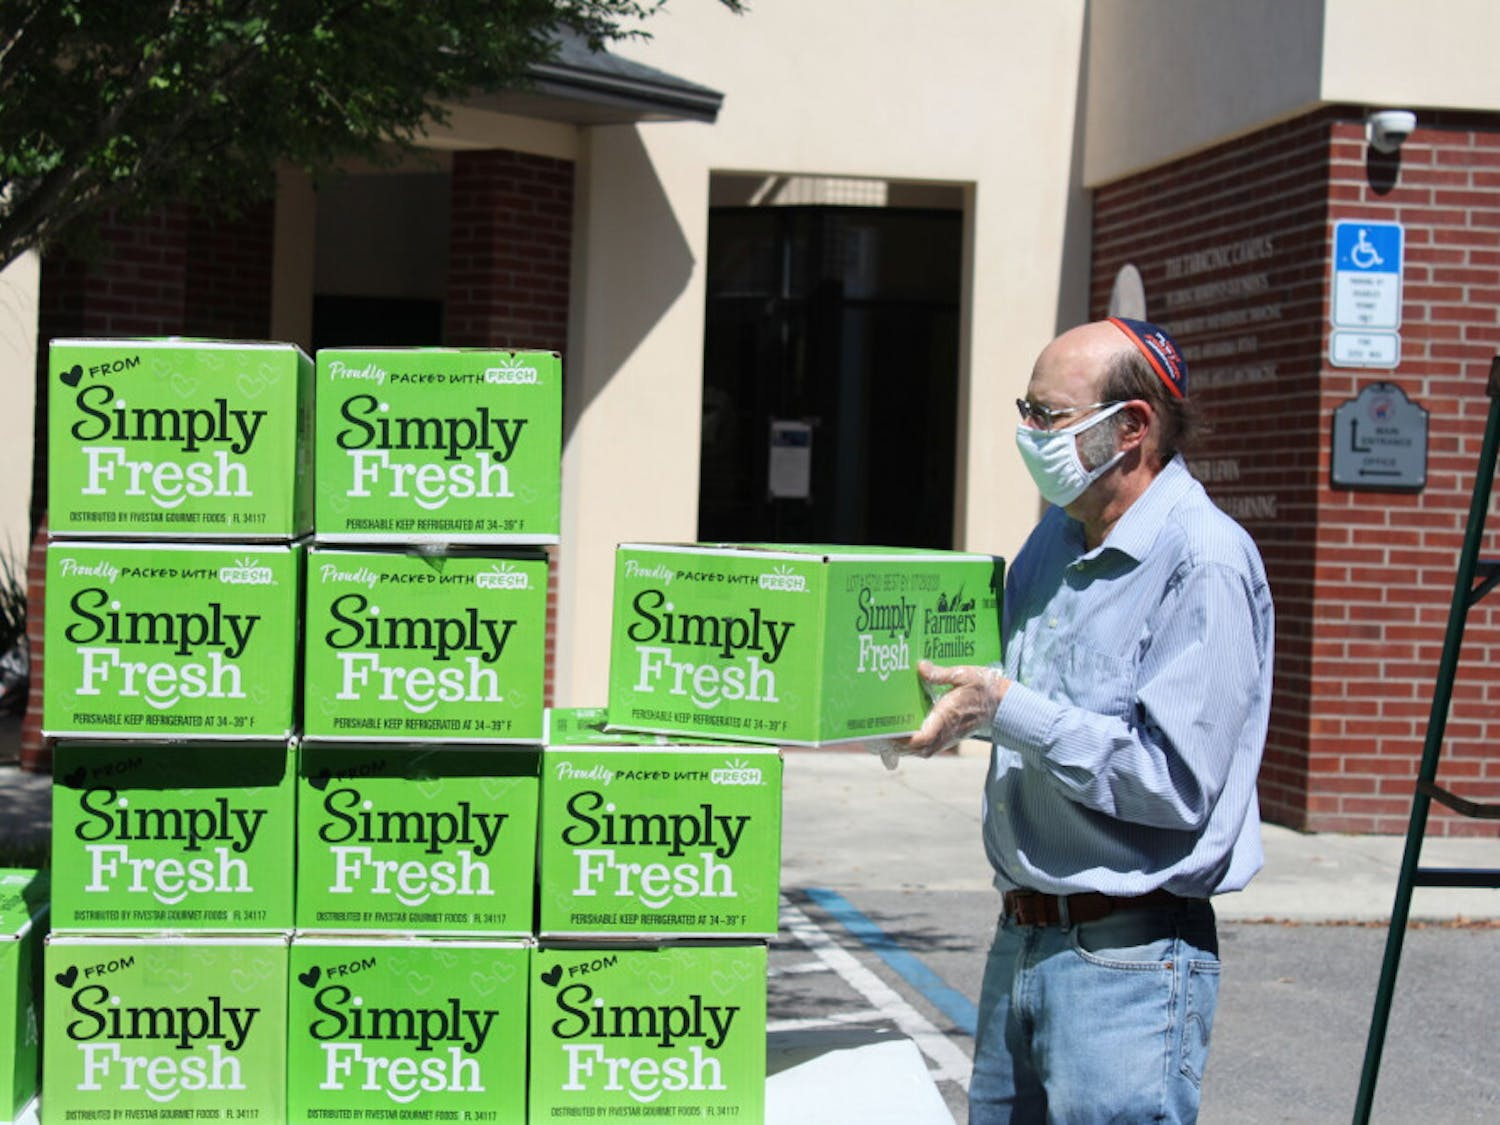 Steven Slutsky, a University of Florida professor of economics, volunteered as part of the effort to distribute boxes of food. Slutsky has volunteered at other initiatives the Lubavitch Chabad Jewish Center of Gainesville has undertaken, like when they gave away 50,000 masks.